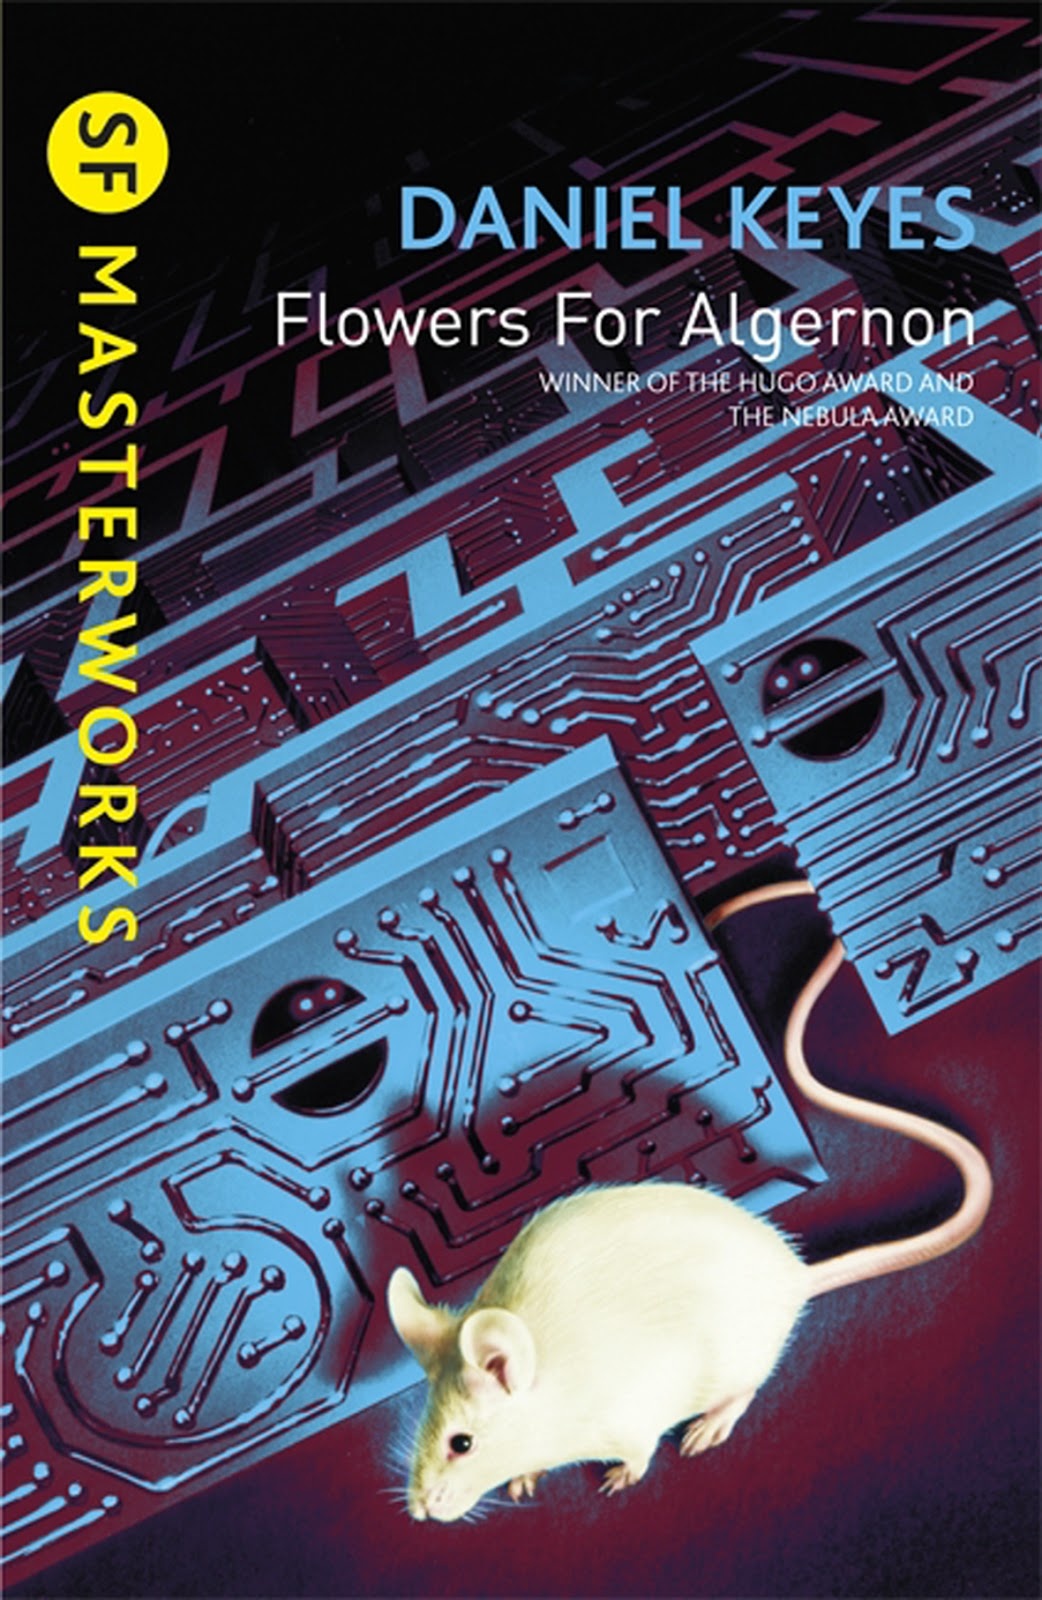 daniel keyes author of flowers for algernon has passed away at daniel keyes author of flowers for algernon has passed away at 86 giant freakin robotgiant freakin robot